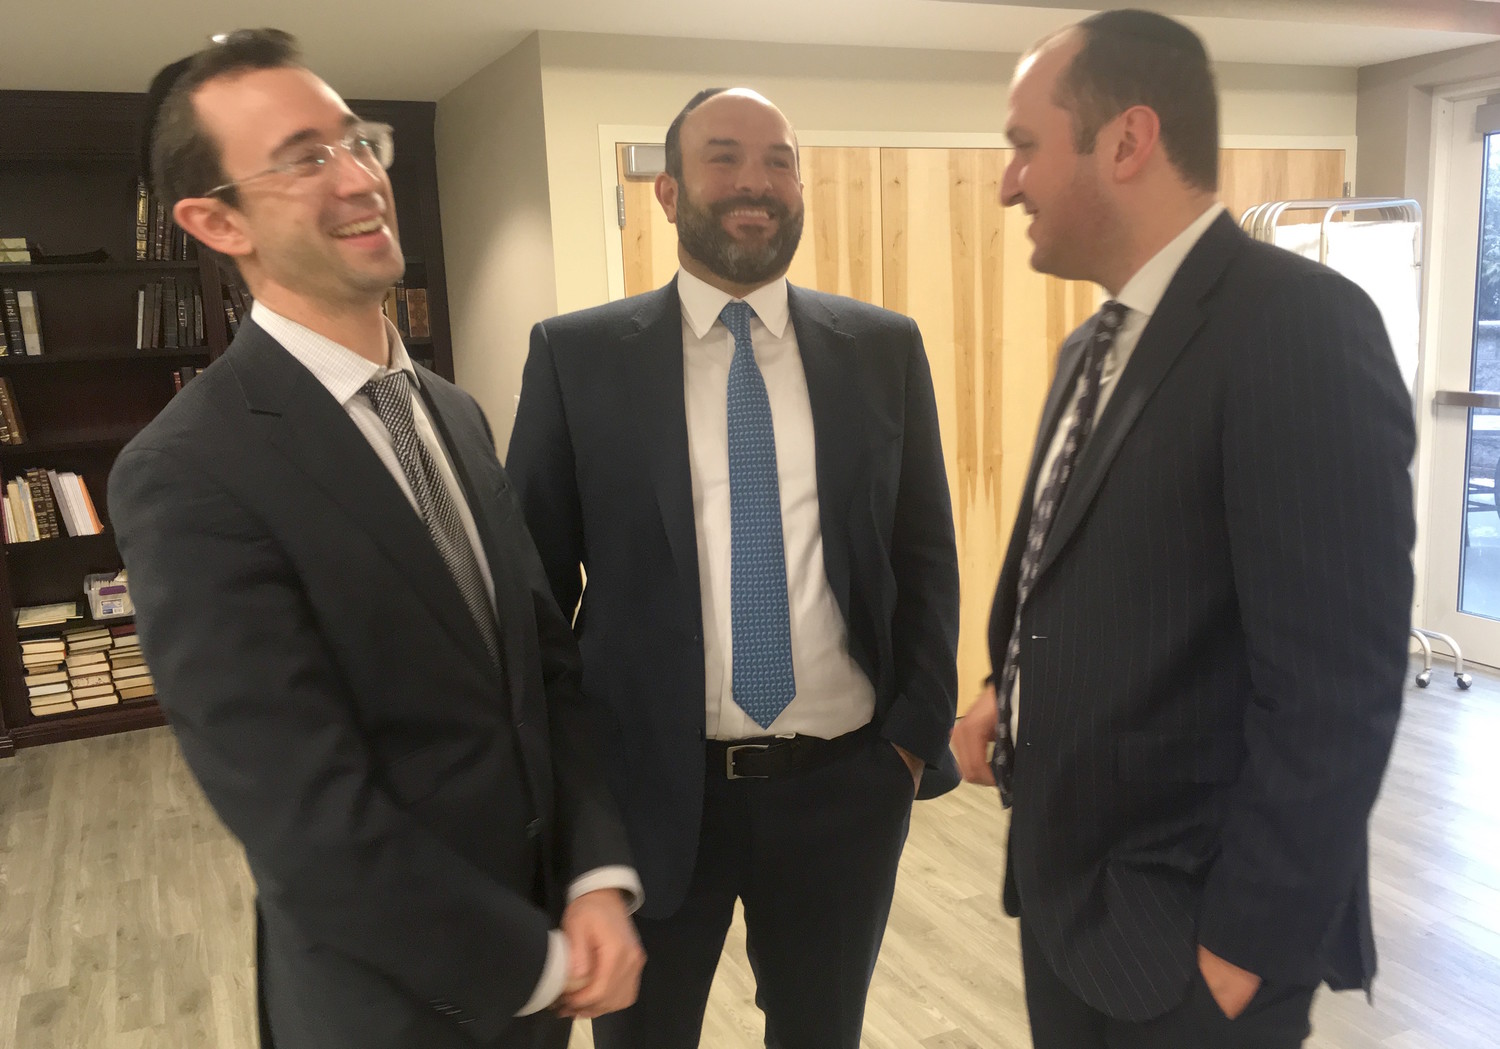 At new kosher rehab center, from left: Rabbi Yaakov Trump of the YI of Lawrence-Cedarhurst, Deputy Mayor of Lawrence Michael Fragin, and center administrator Daniel Schaffer.